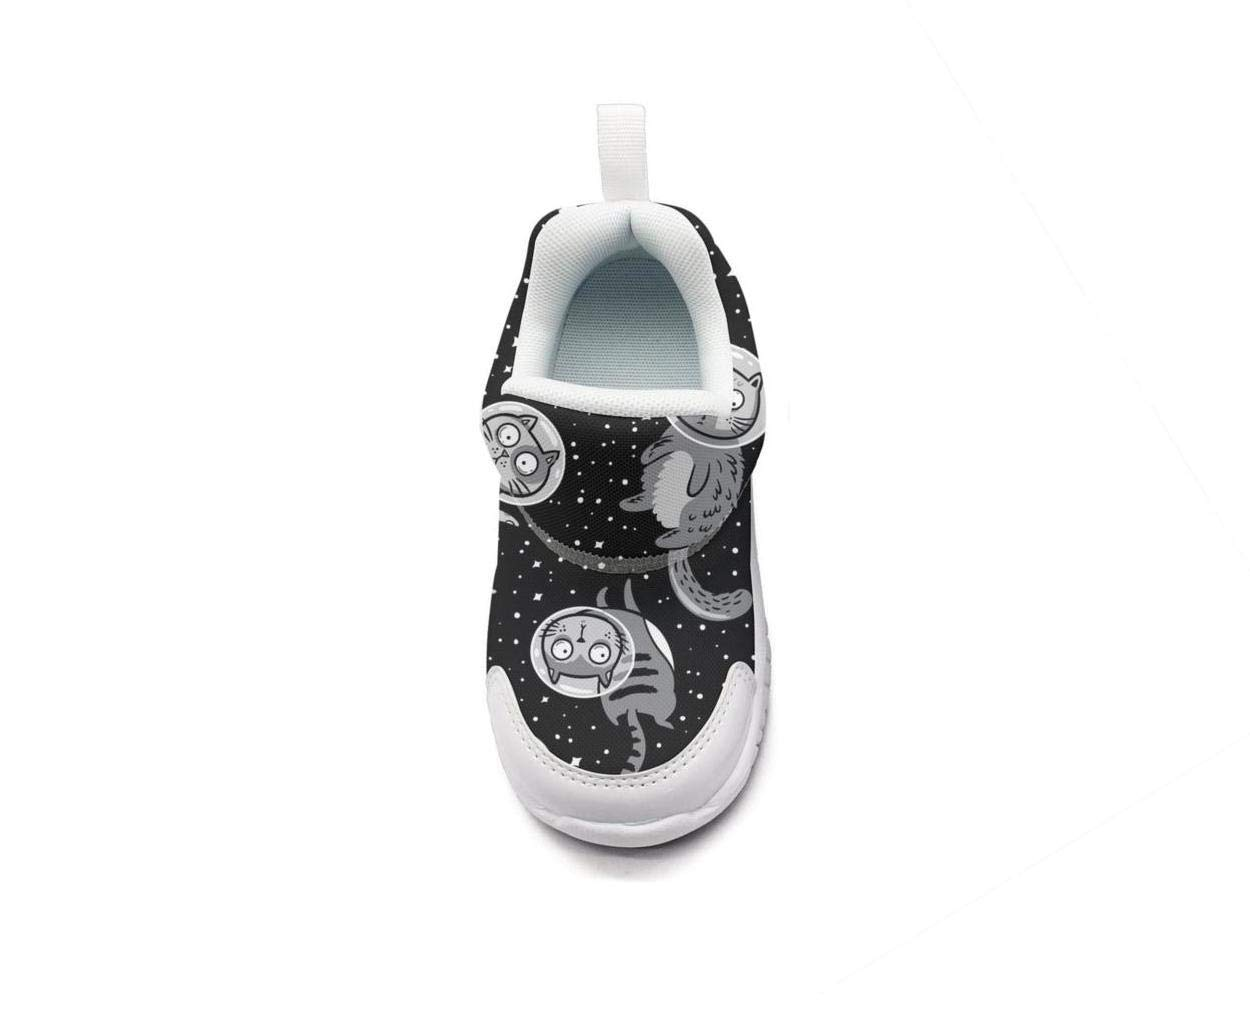 ONEYUAN Children Black Mini Space Astronaut Cat Kid Casual Lightweight Sport Shoes Sneakers Walking Athletic Shoes